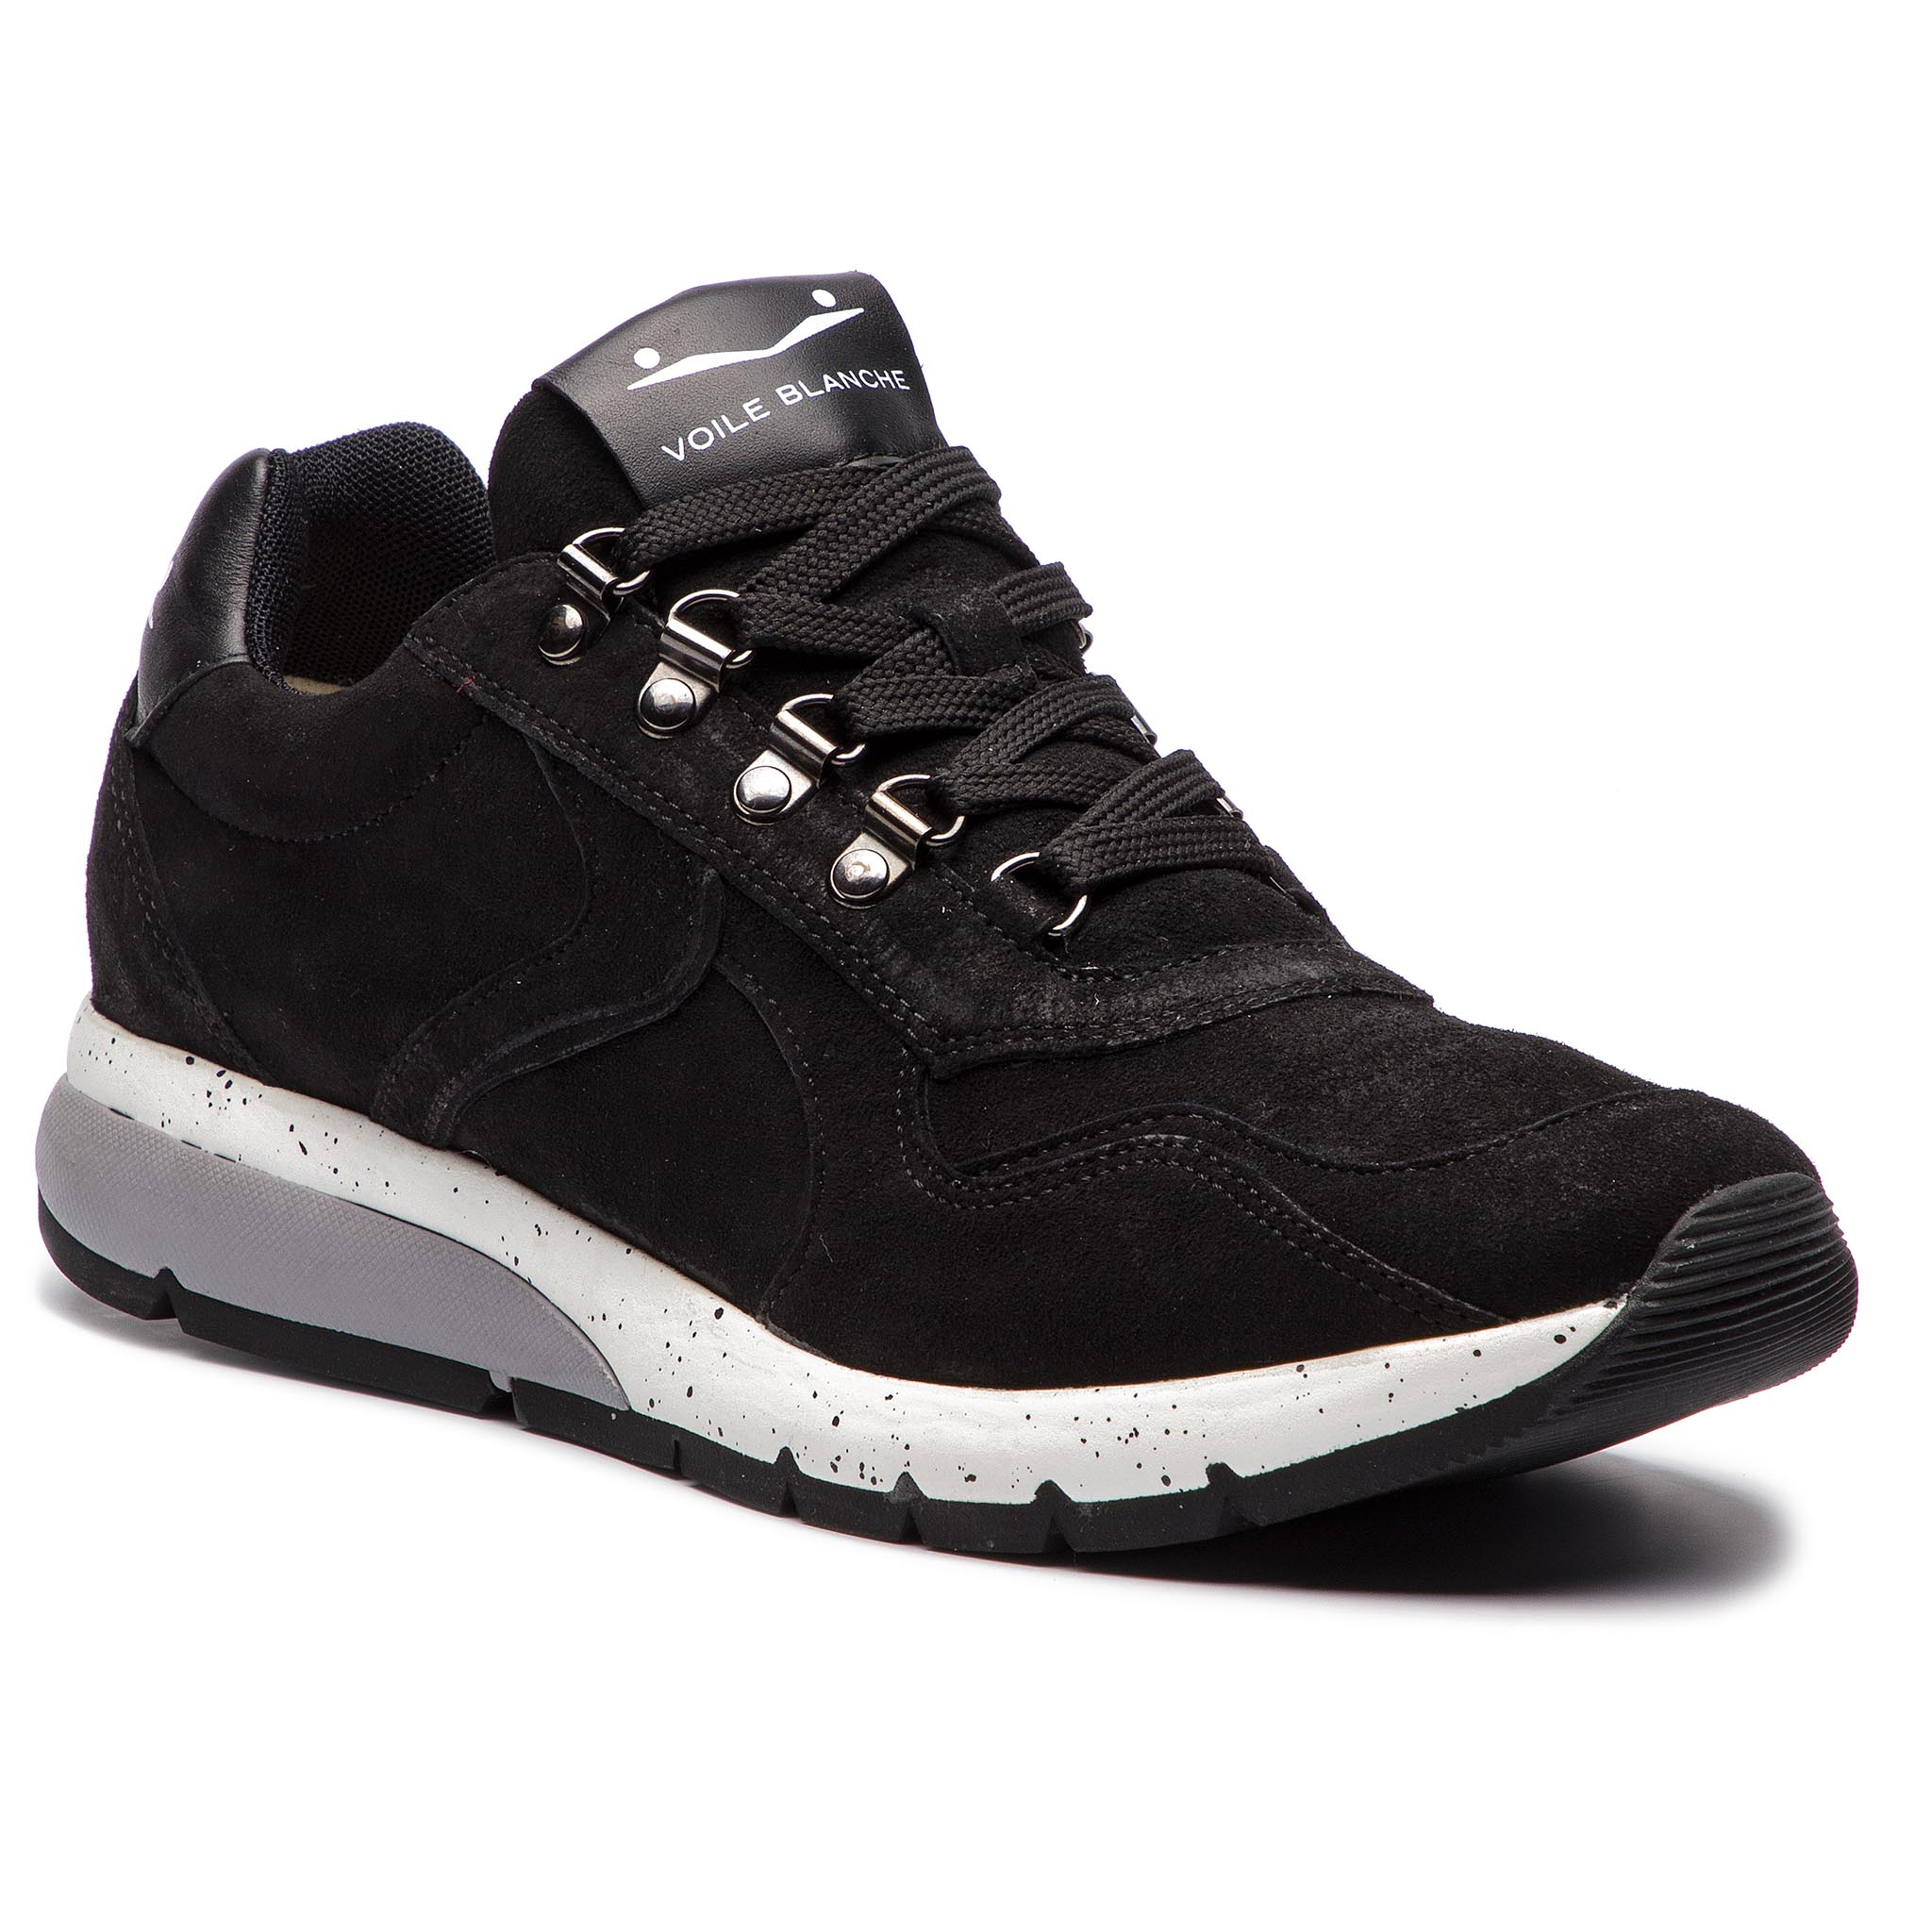 Sneakers VOILE BLANCHE - Lenny Hook 0012012968.05.9141 Nero